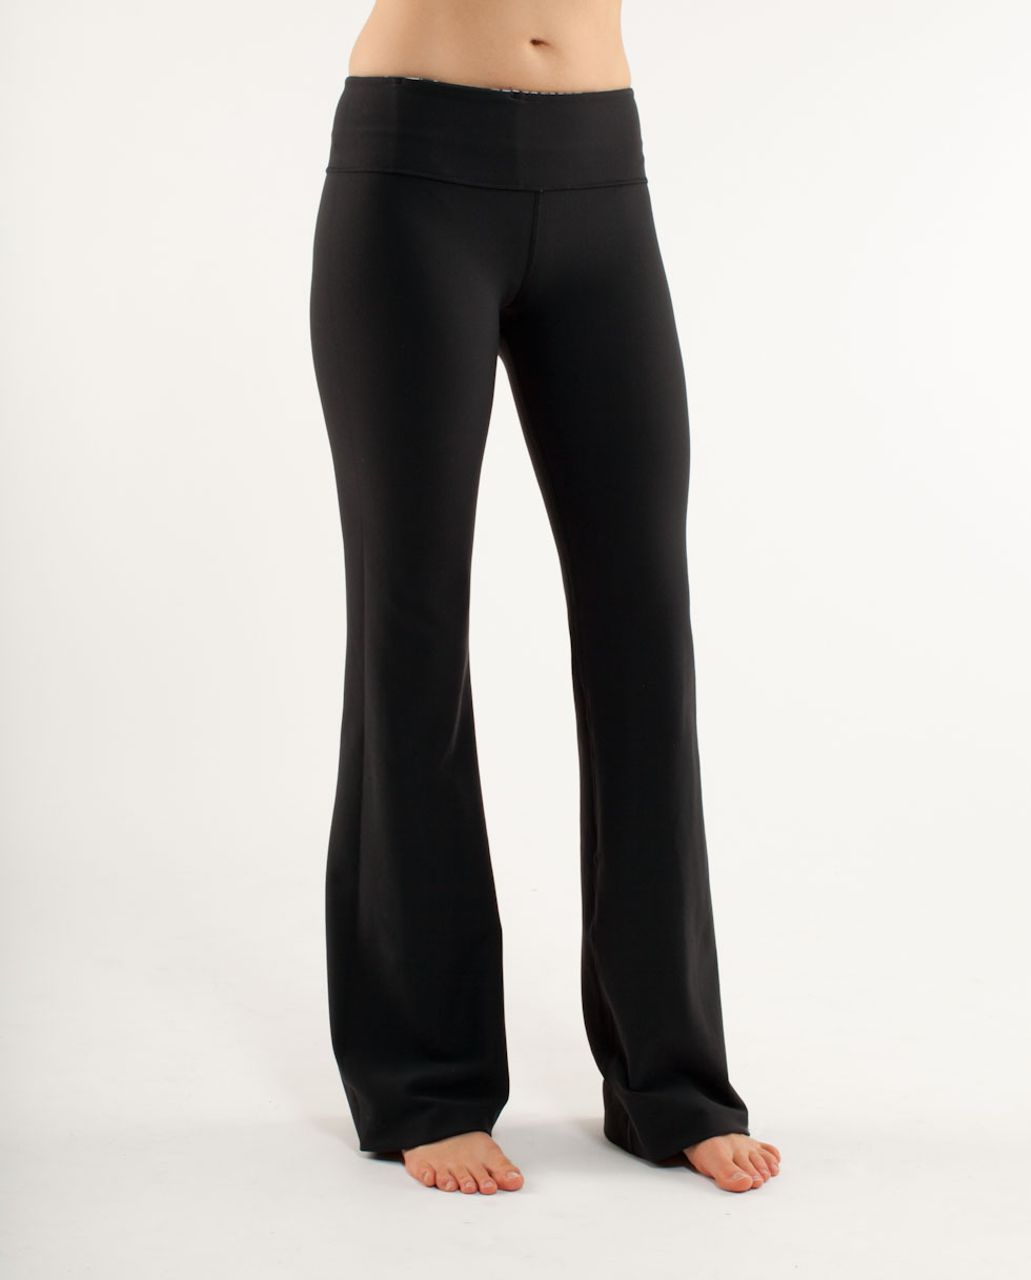 Lululemon Groove Pant (Tall) - Black /  White Black Glacier Lace /  White Black Glacier Lace